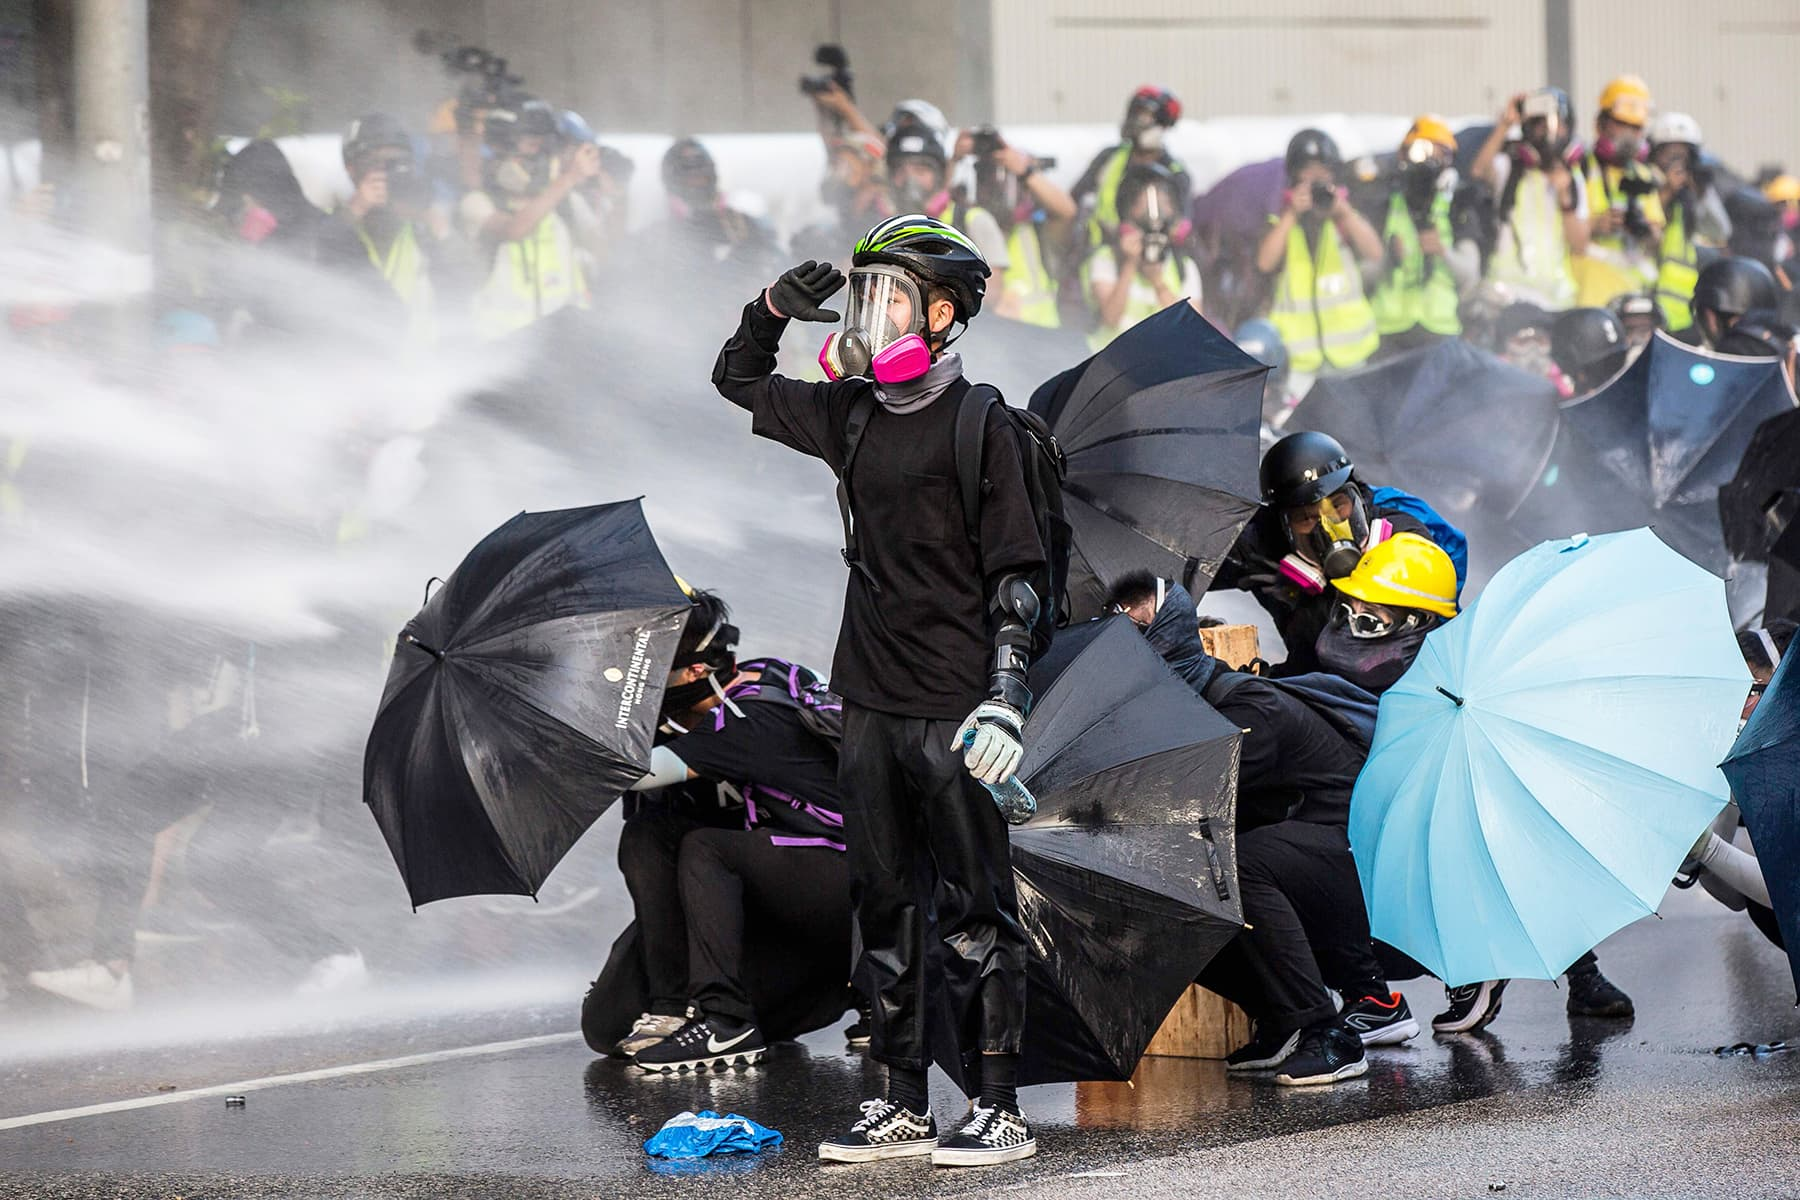 Pro-democracy protesters react as police fire water cannons outside the government headquarters in Hong Kong on Sunday. — AFP